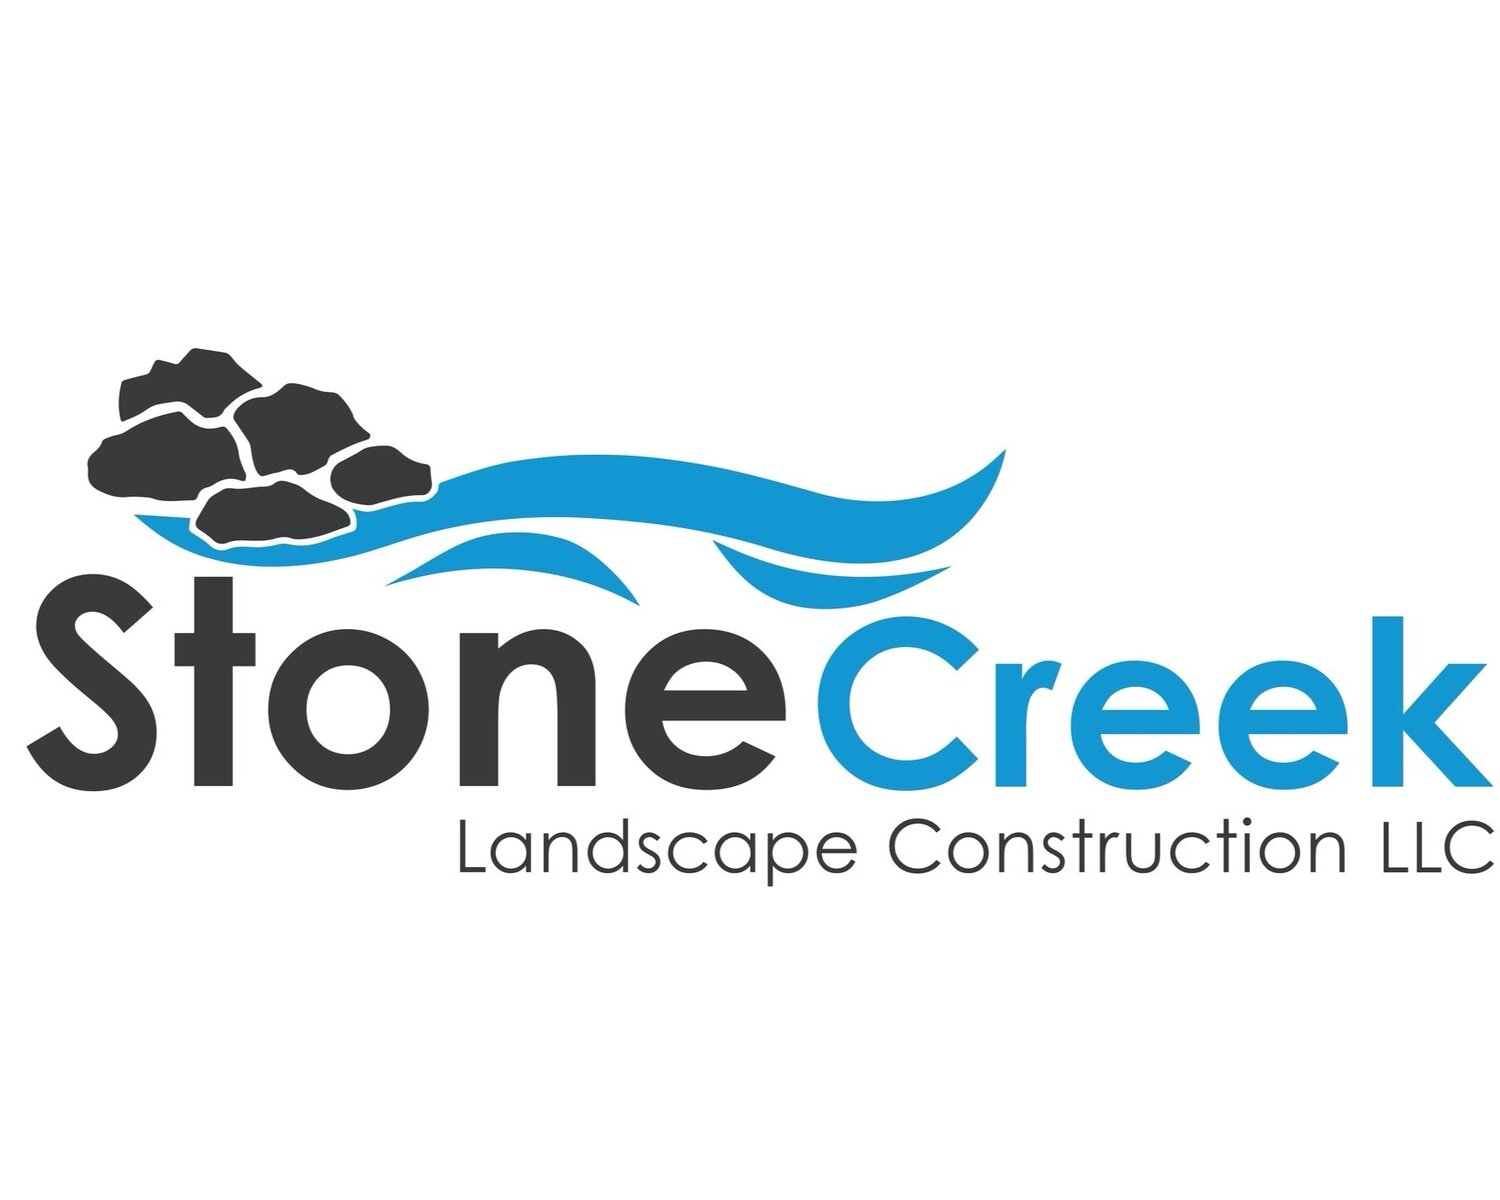 Stone Creek Landscape Construction, LLC